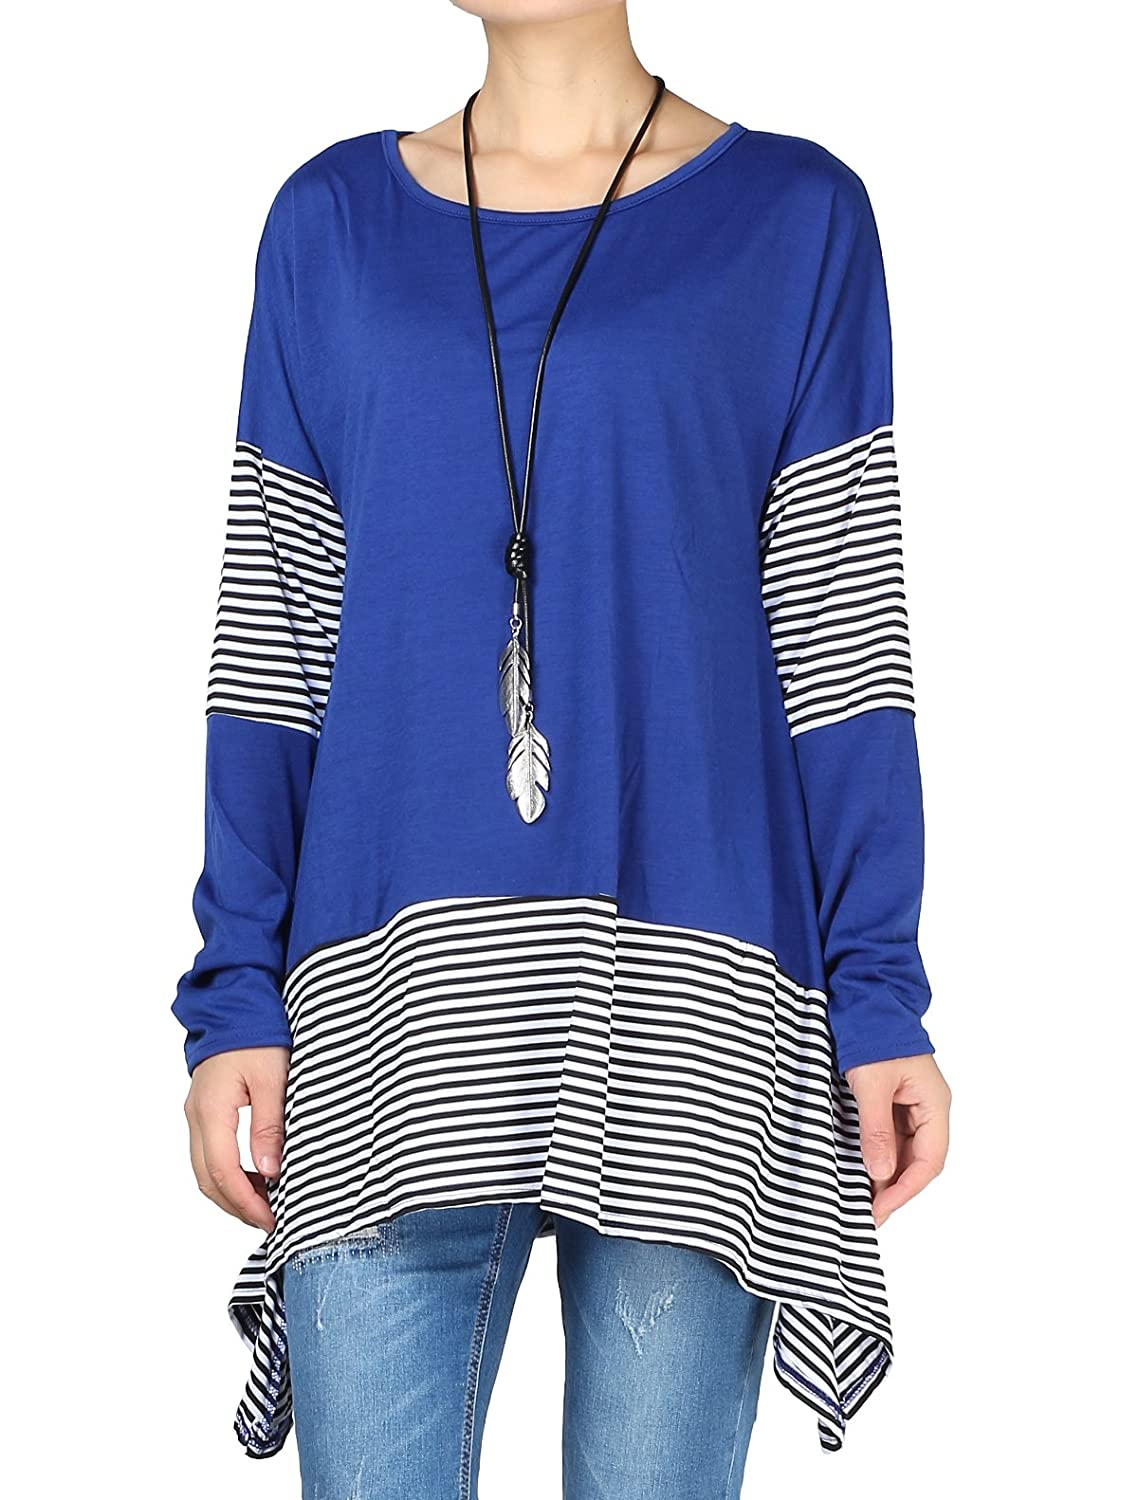 Mordenmiss Women's Stripes Asymmetry Hem Tunics Blouse with Pockets MS1713